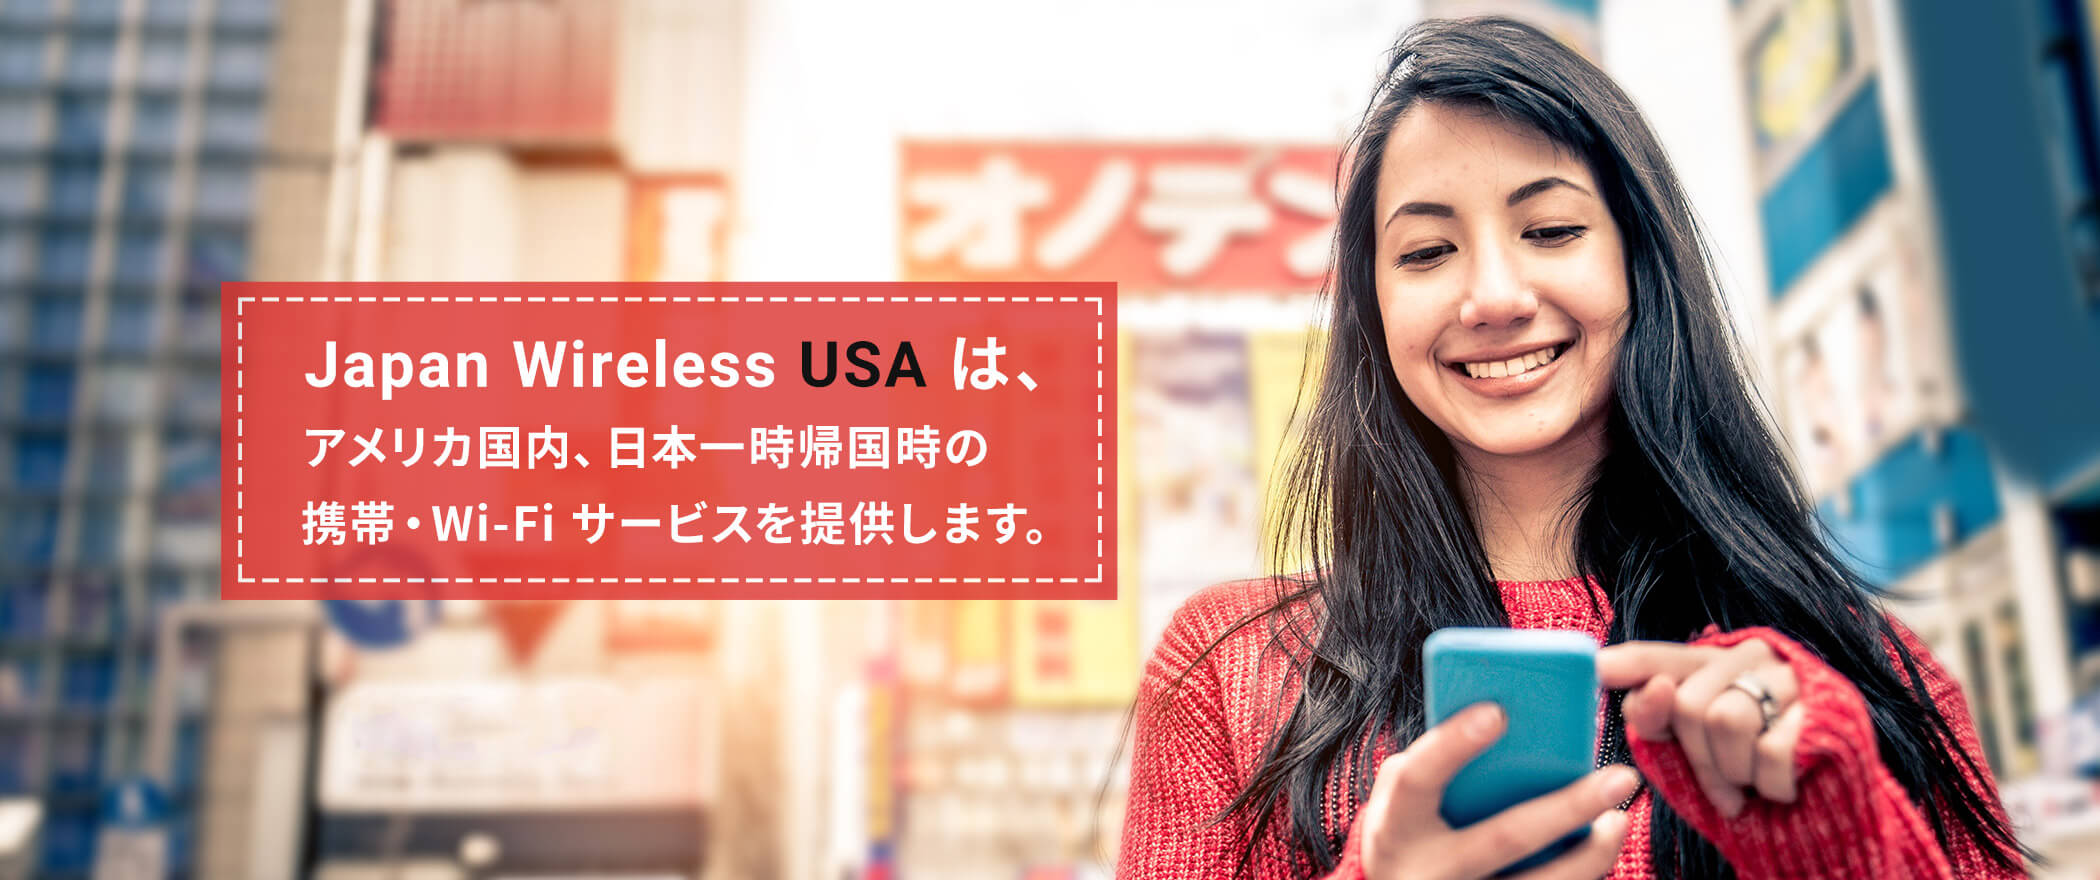 Welcome to JAPAN WIRELESS USA